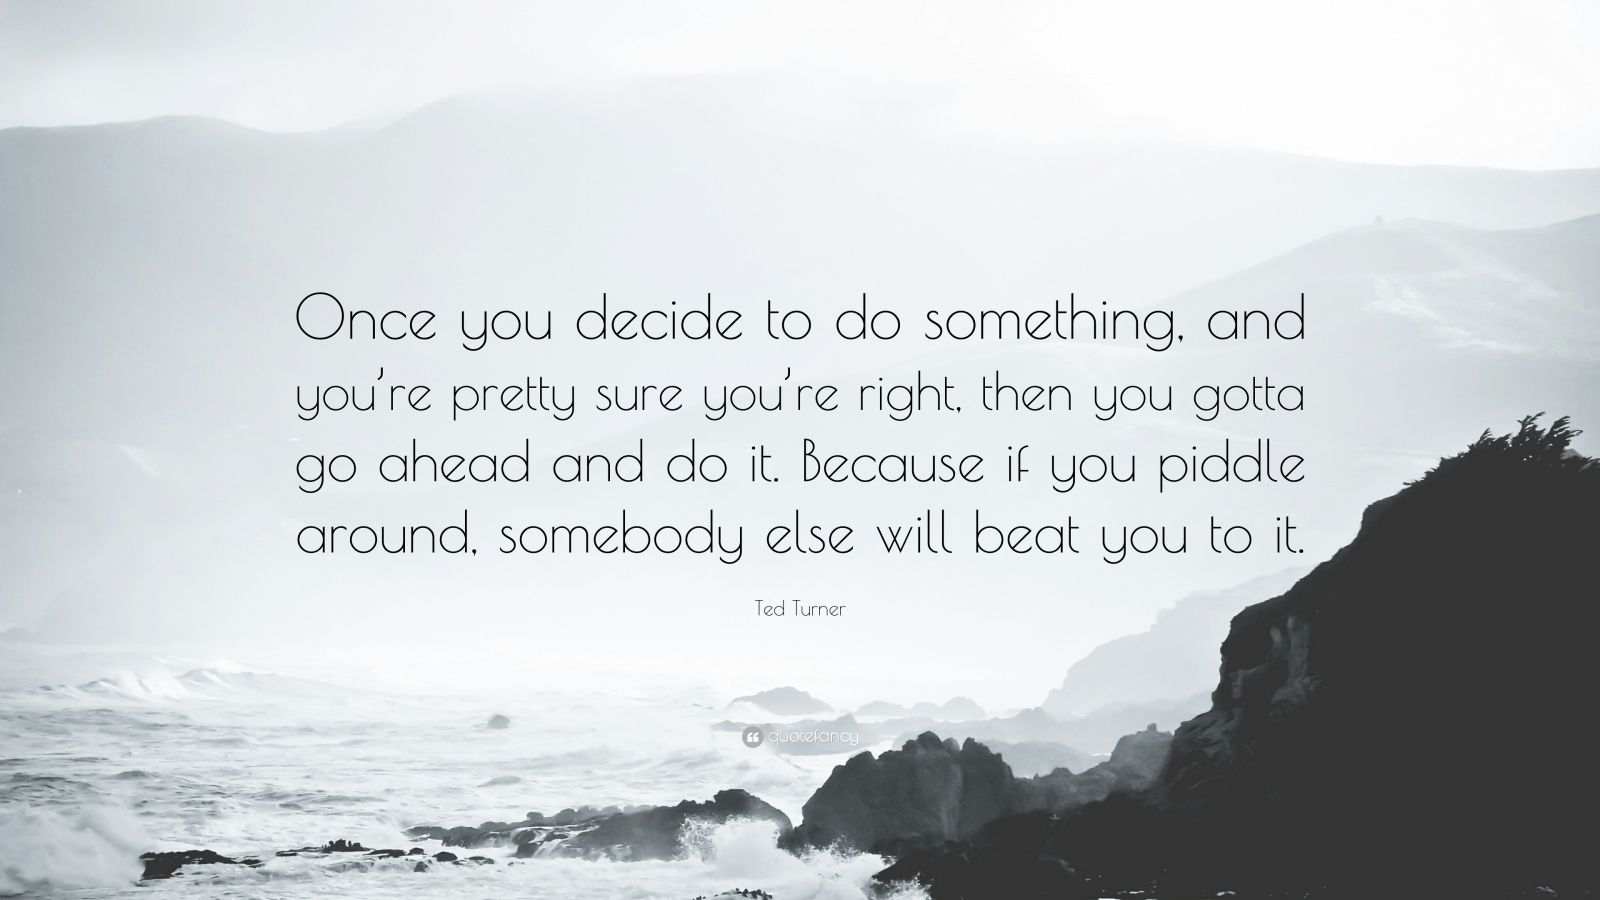 """Ted Turner Quote: """"Once you decide to do something, and you're pretty sure you're right, then you gotta go ahead and do it. Because if you piddle around, somebody else will beat you to it."""""""